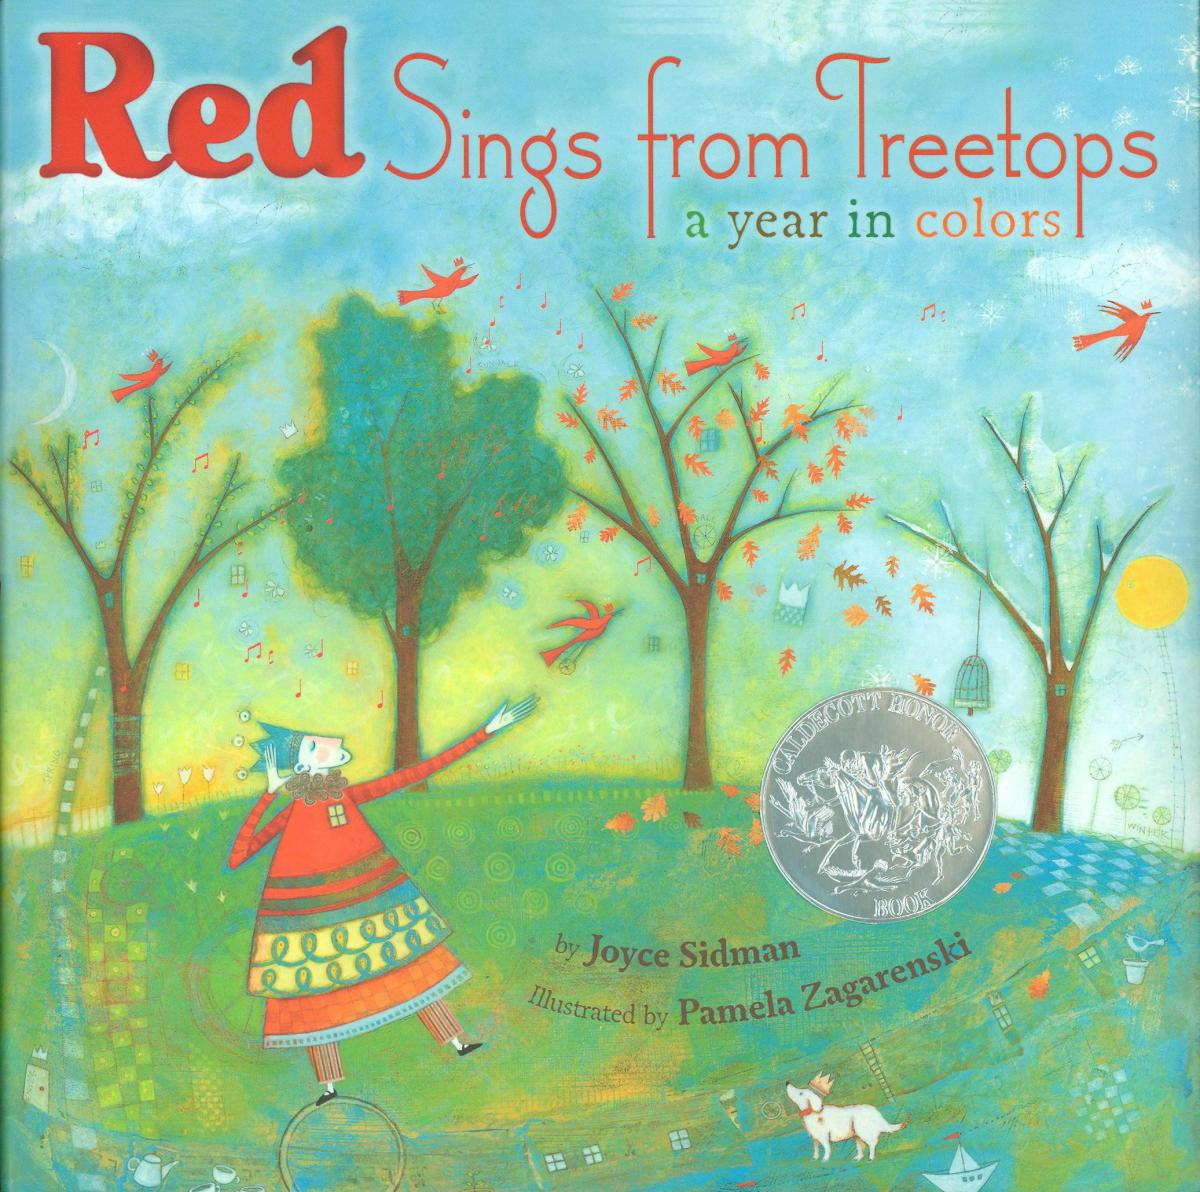 Red Sings from Treetops: A Year in Colors book cover image